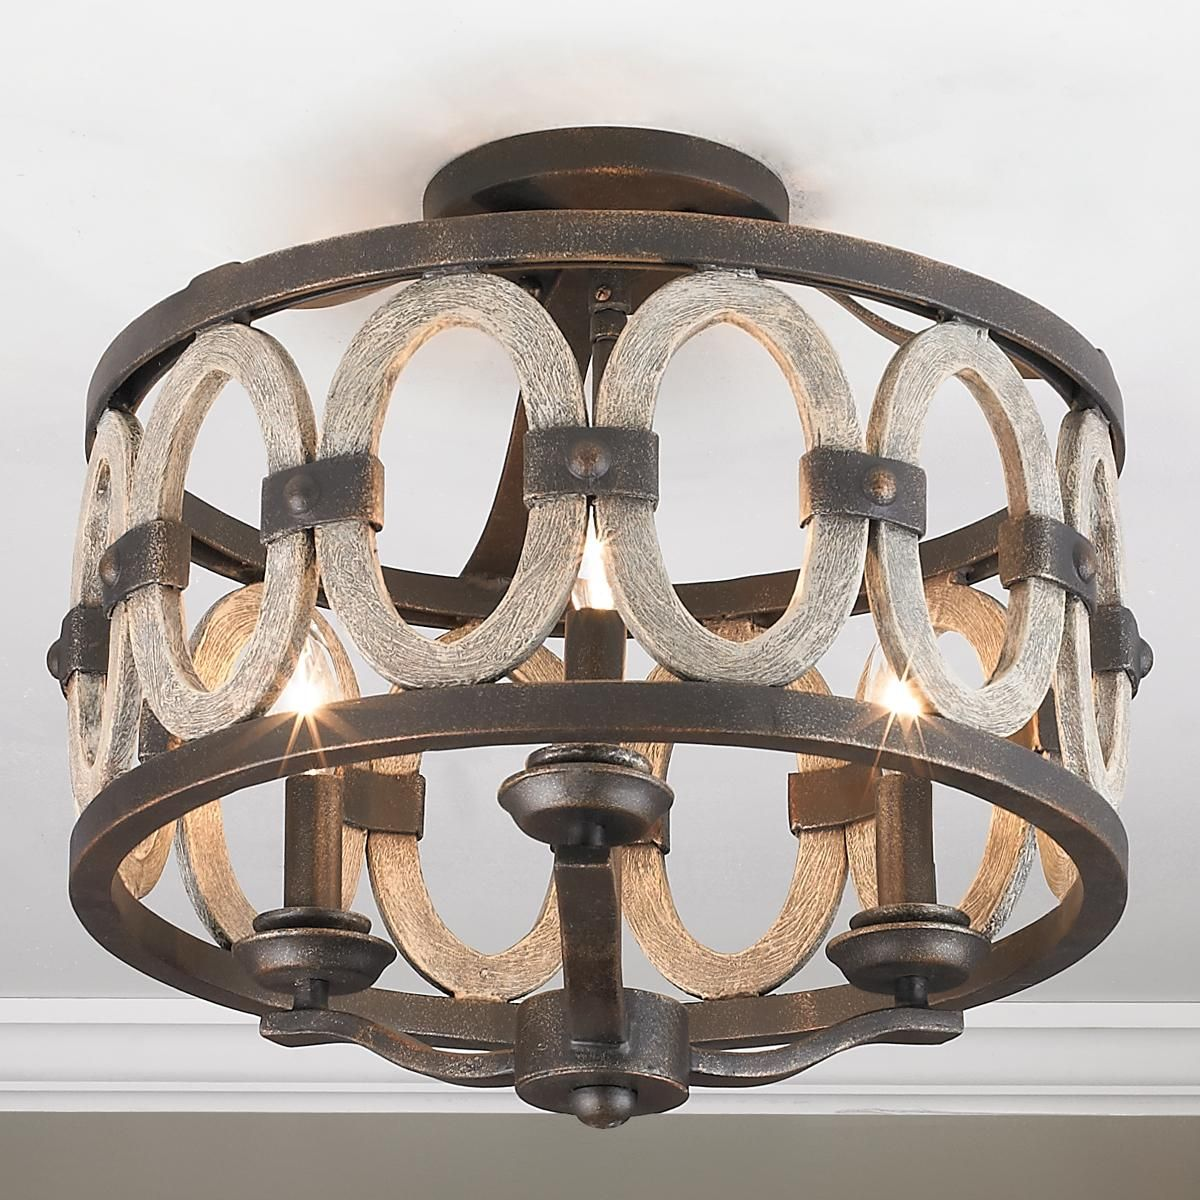 Driftwood entwined ovals ceiling light with images